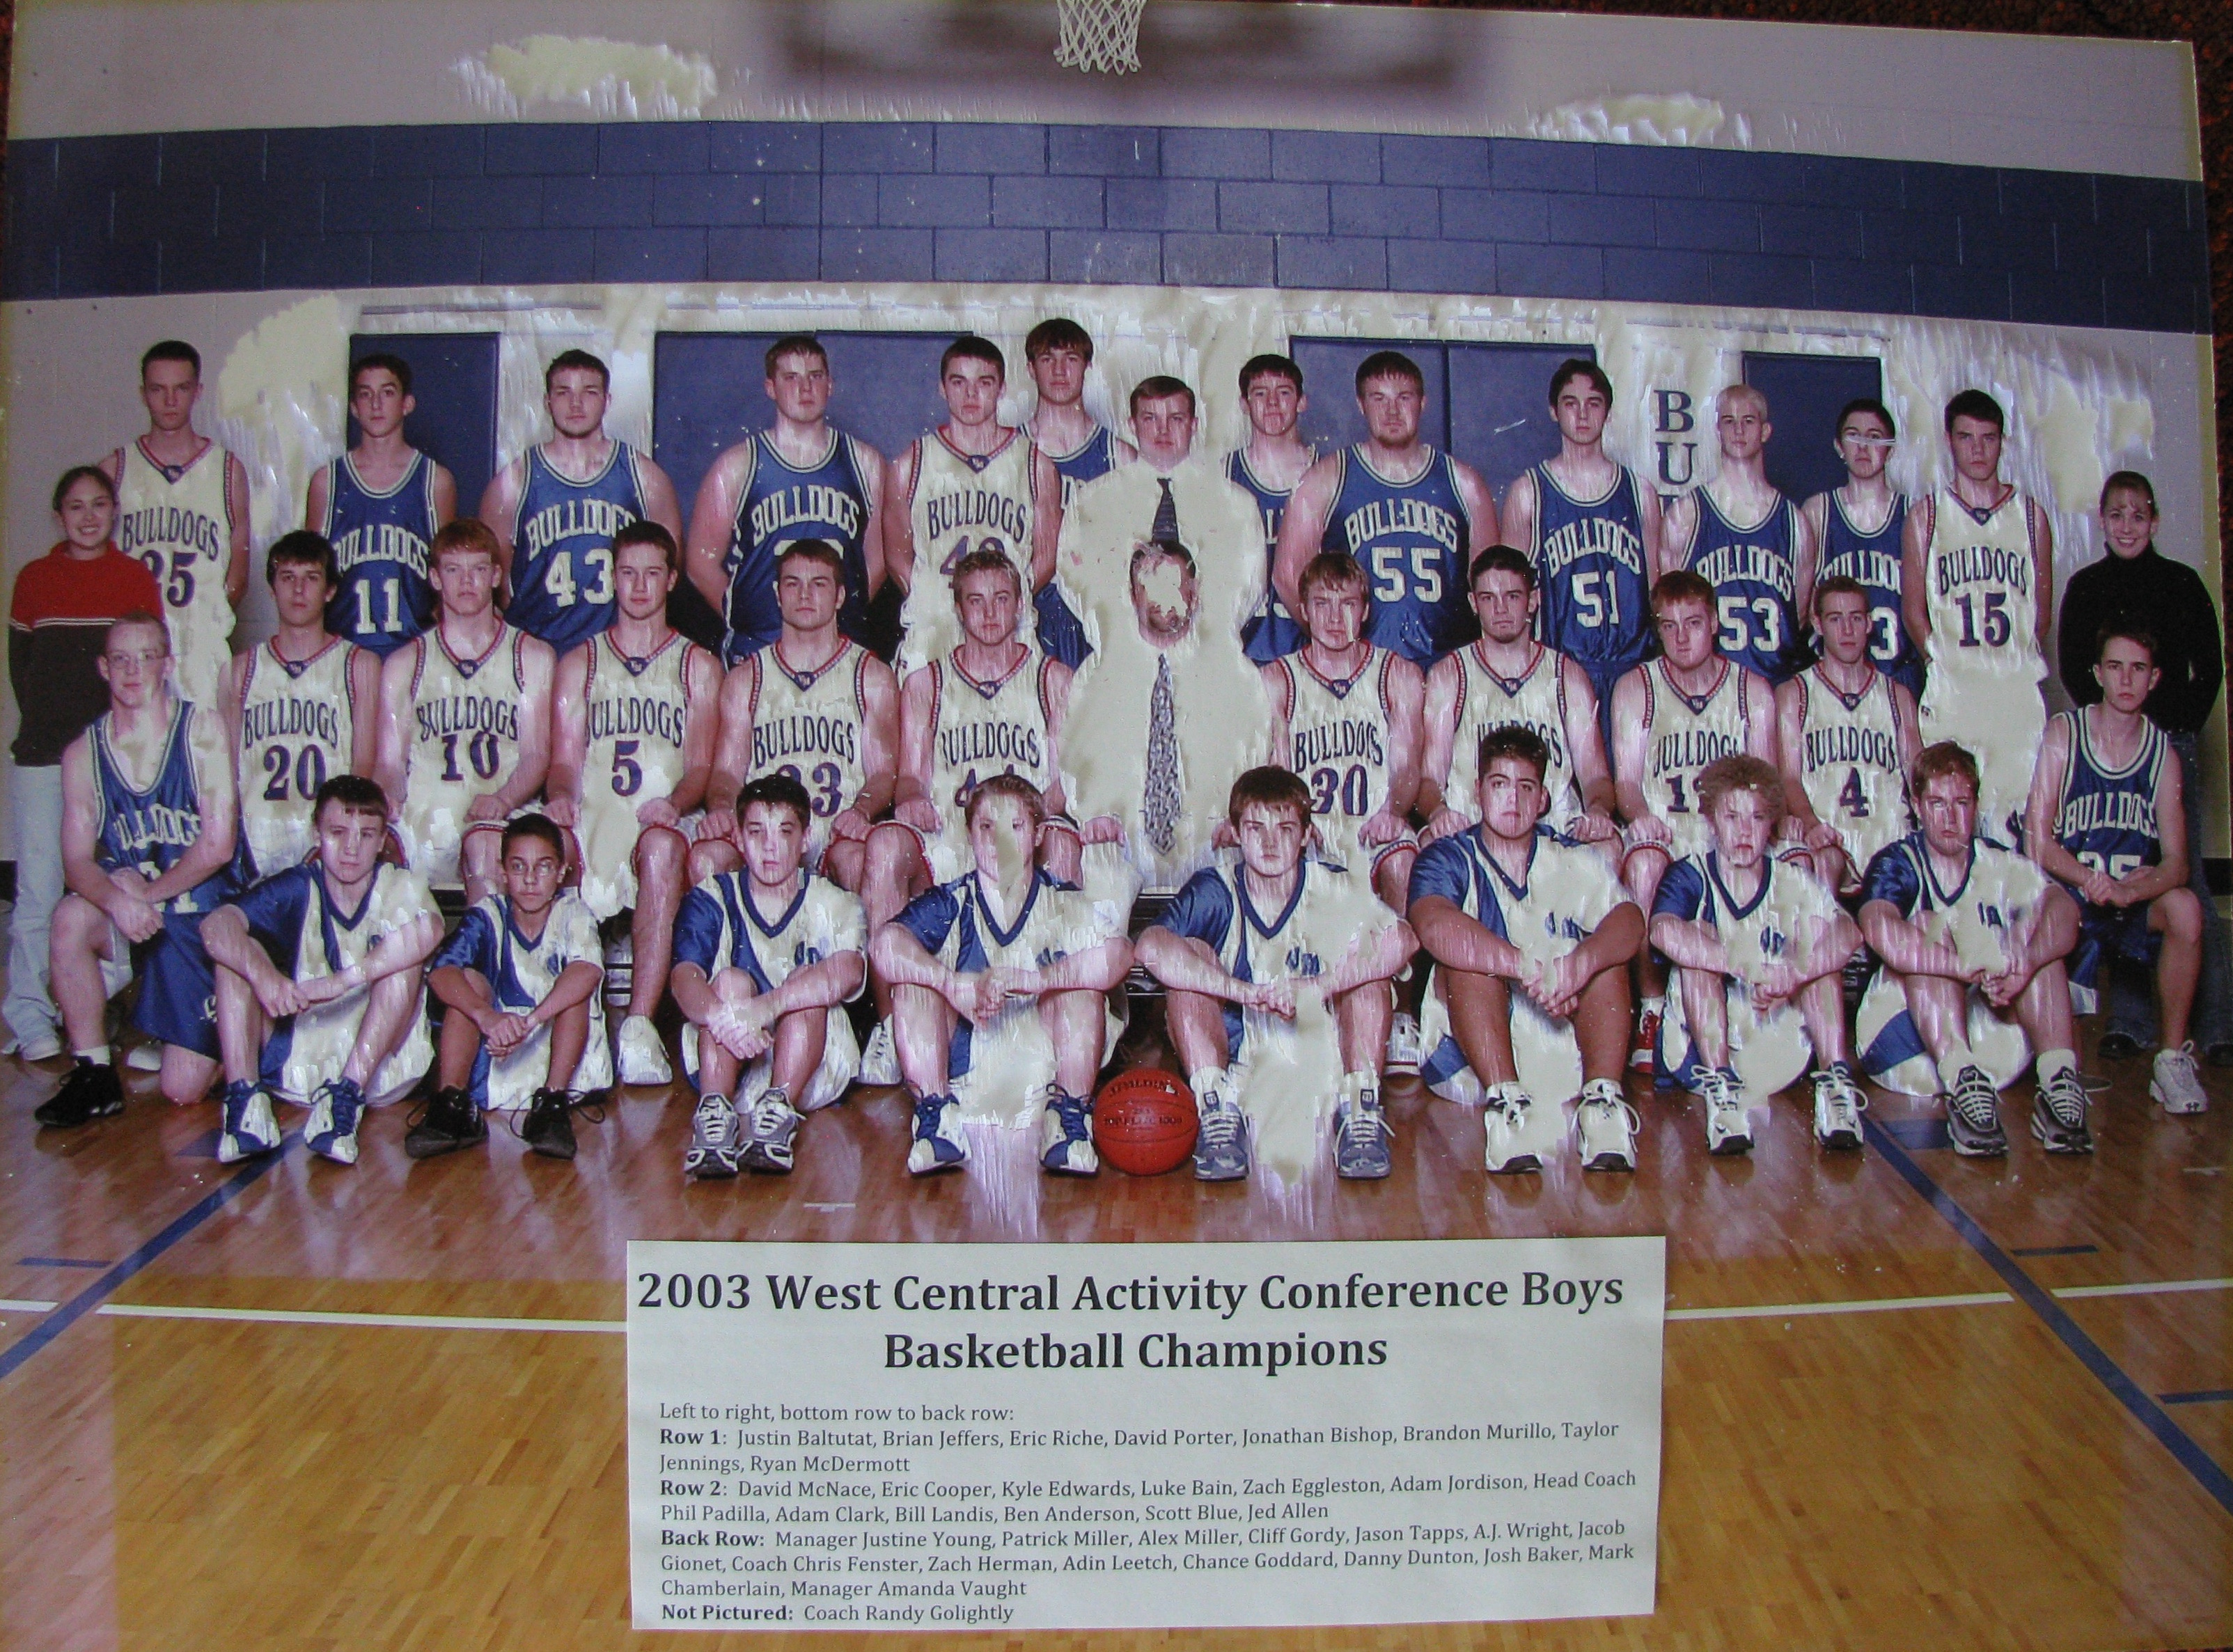 2003 boys basketball